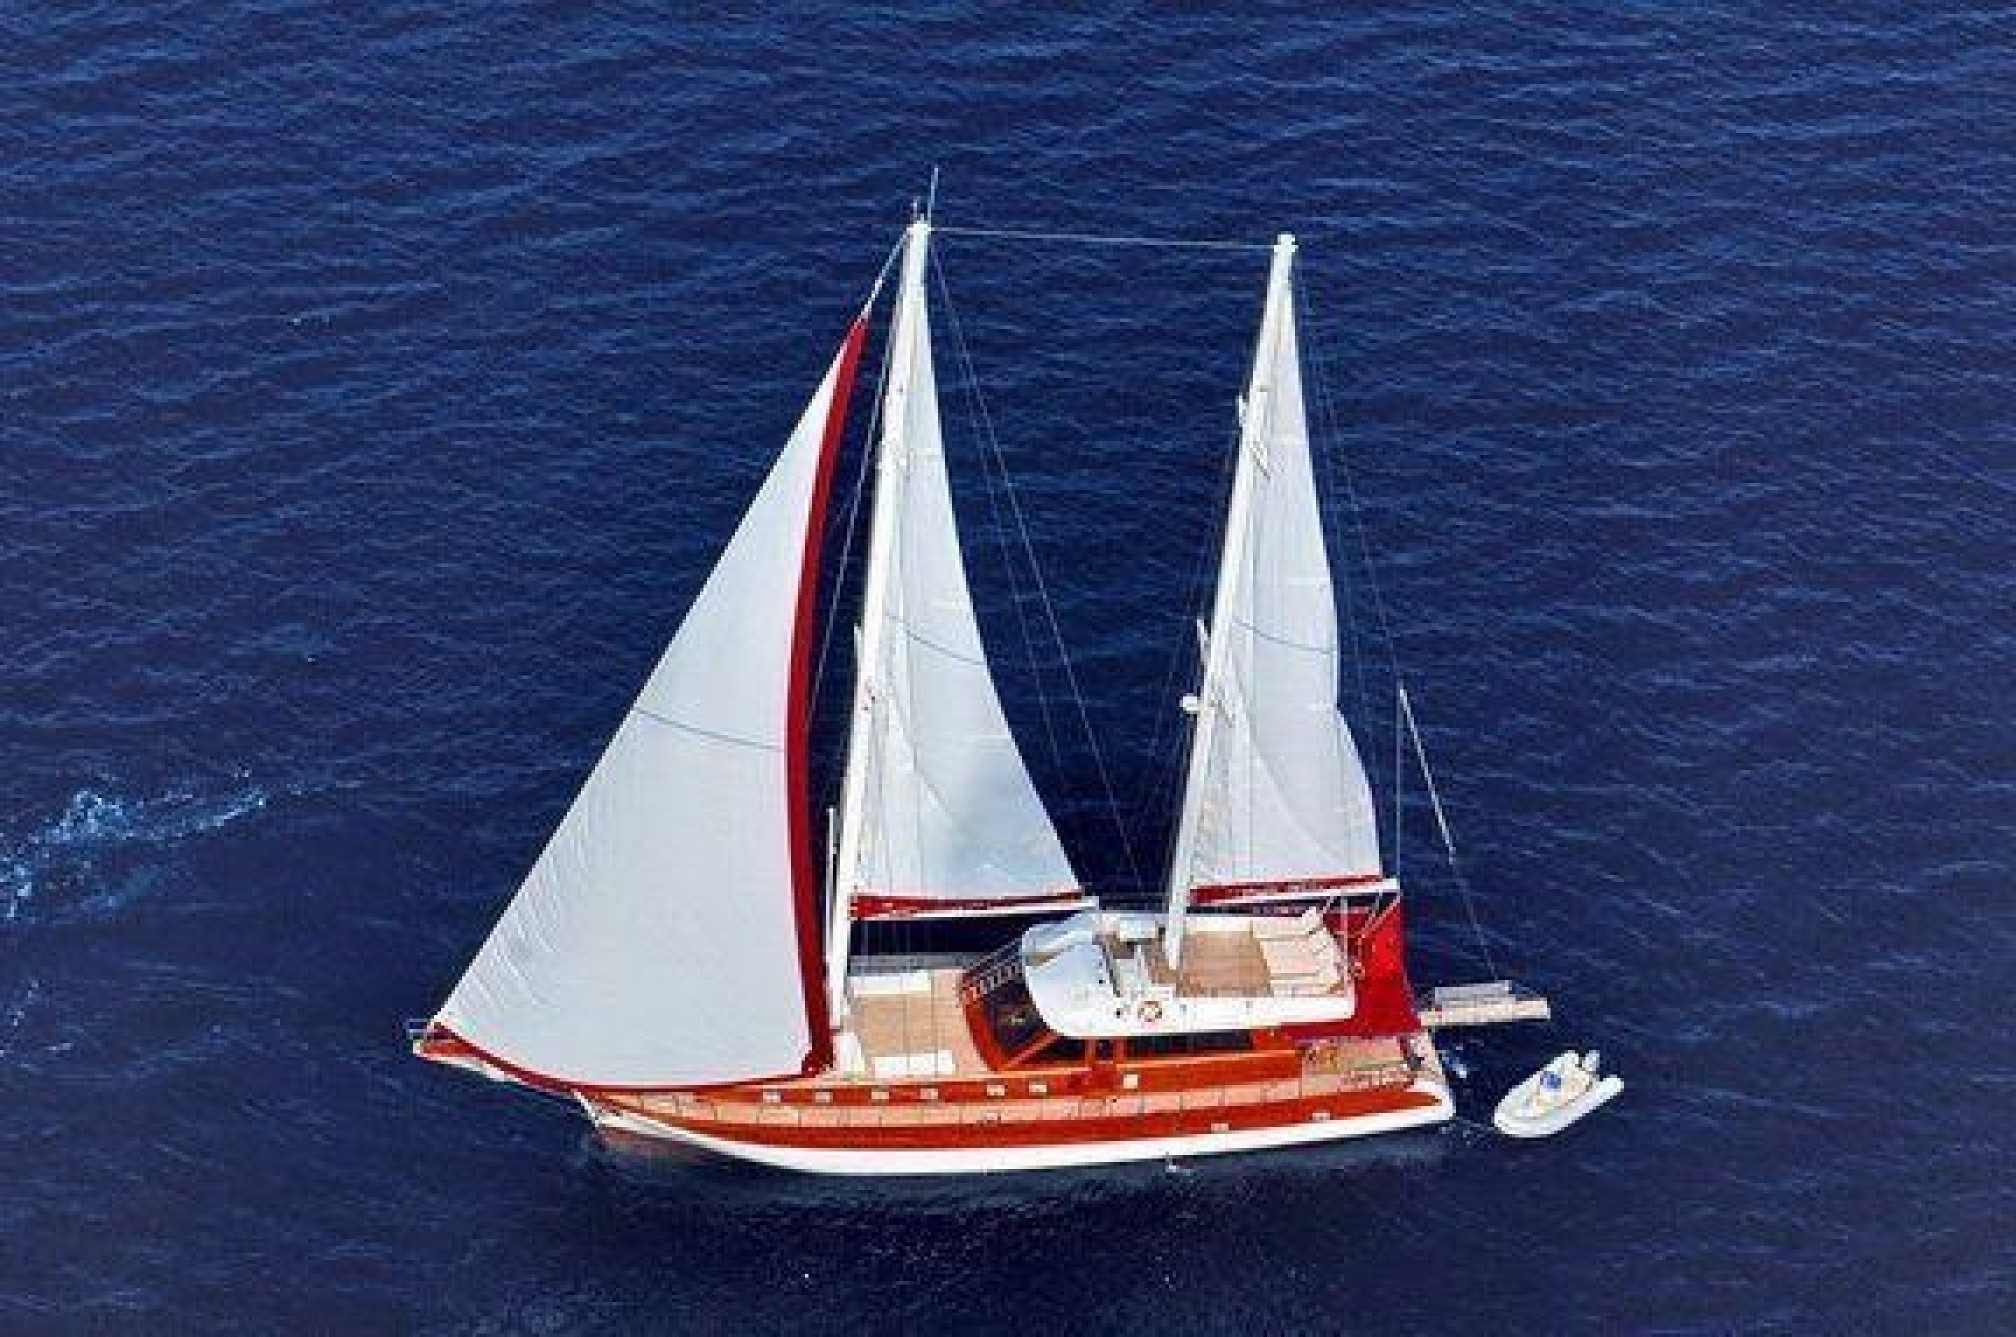 Adriatic Holiday gulet charter sailing